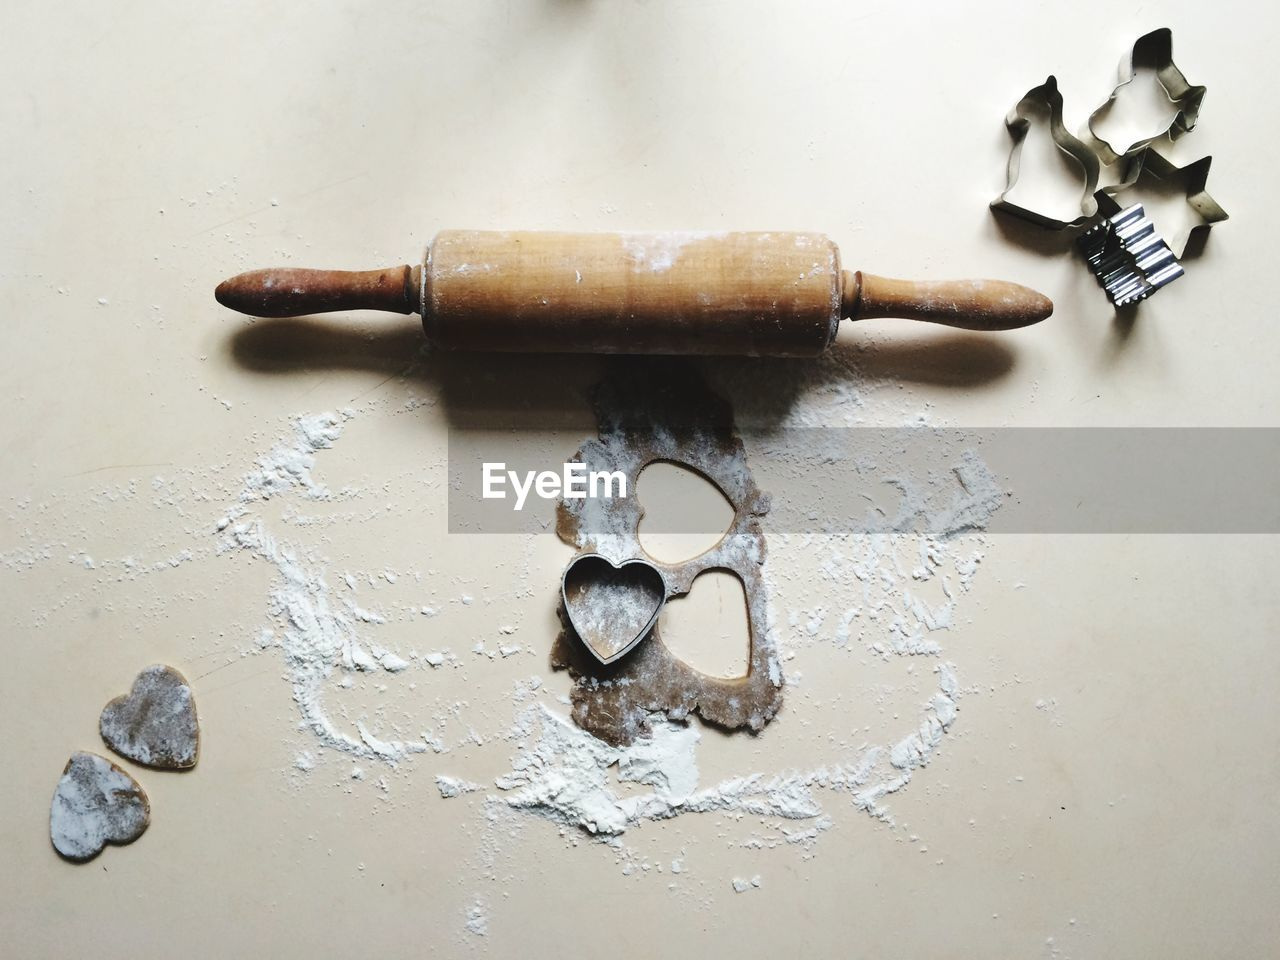 High angle view of rolling pin with cookie cutters on table